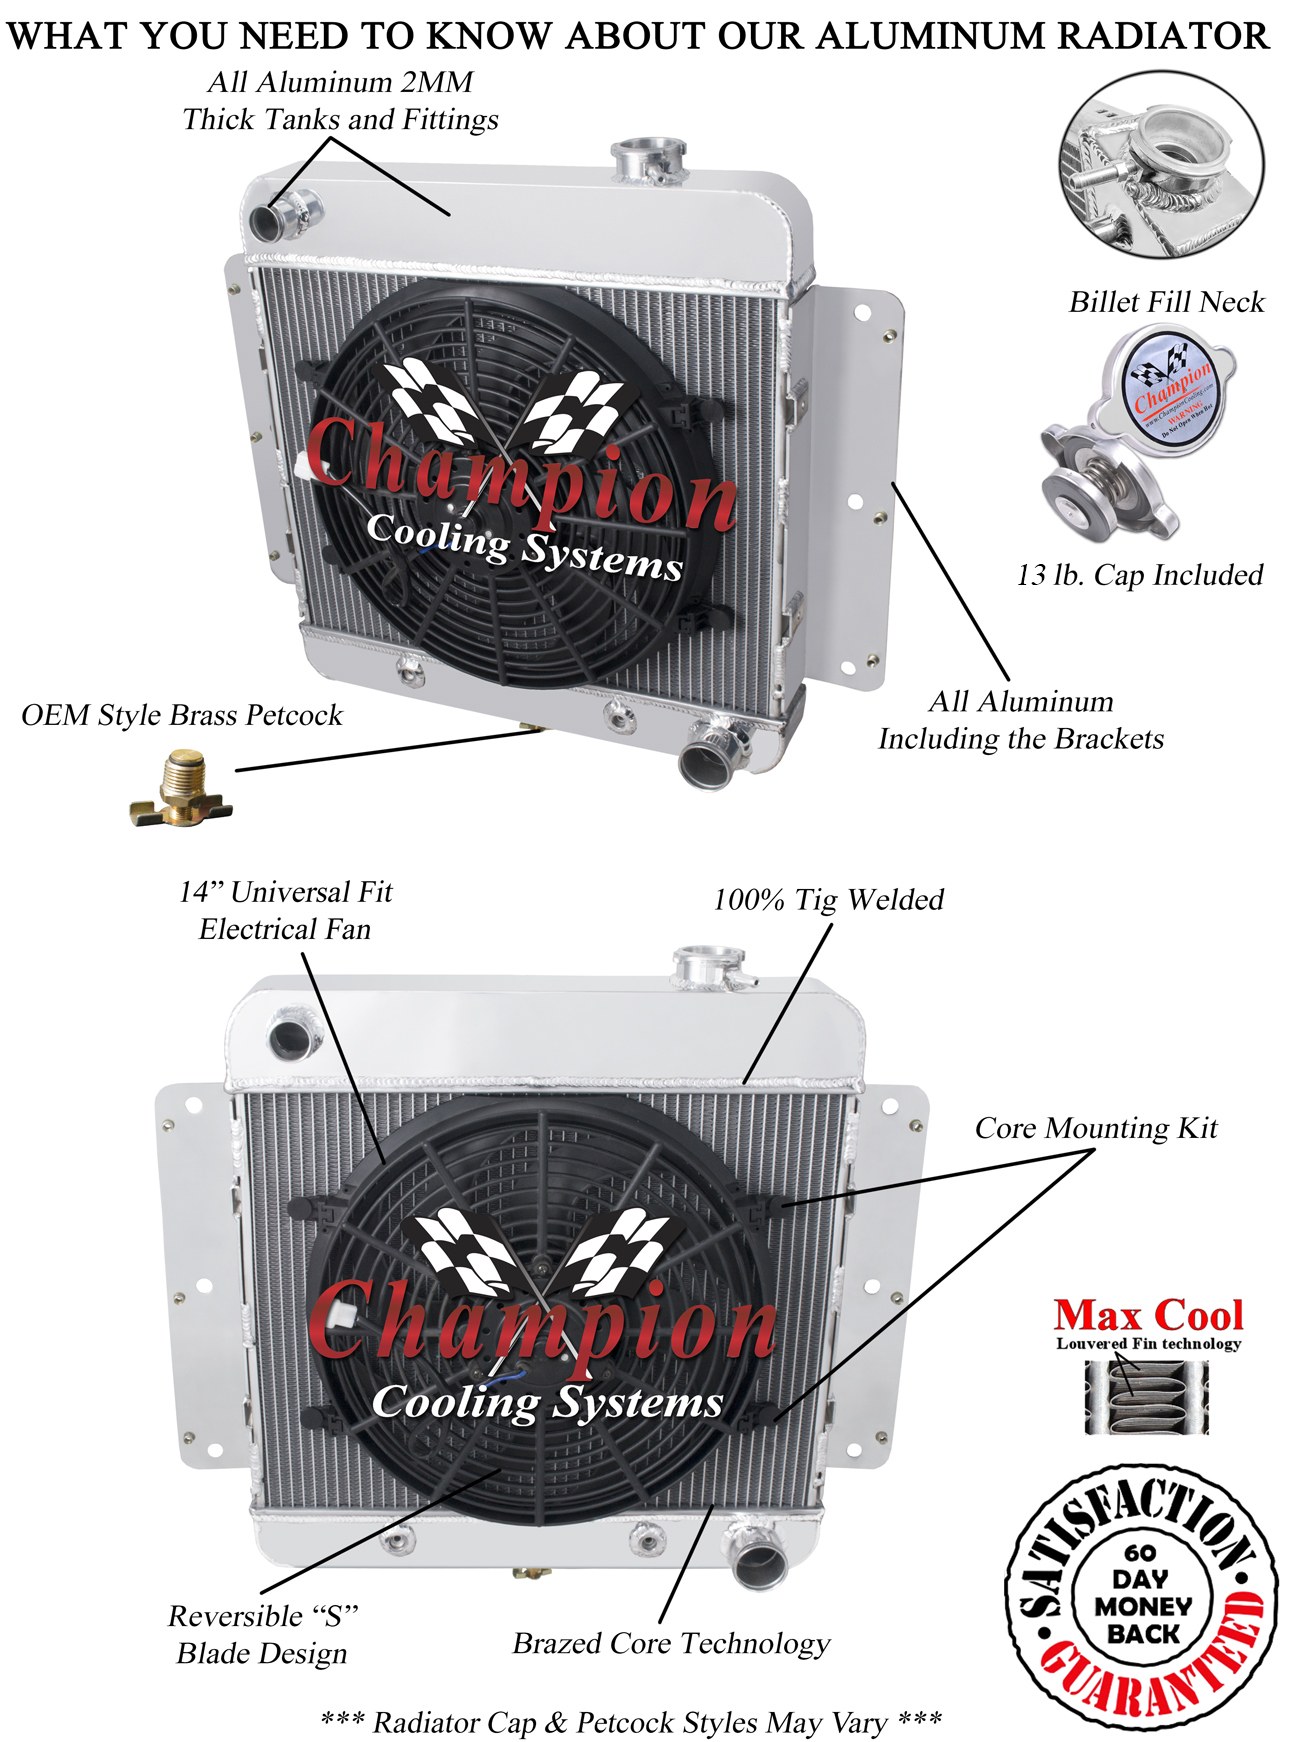 https://www.championcooling.com/photos/Photos%20White/With%20Fans/Combos/255/255_1f_d_w.jpg